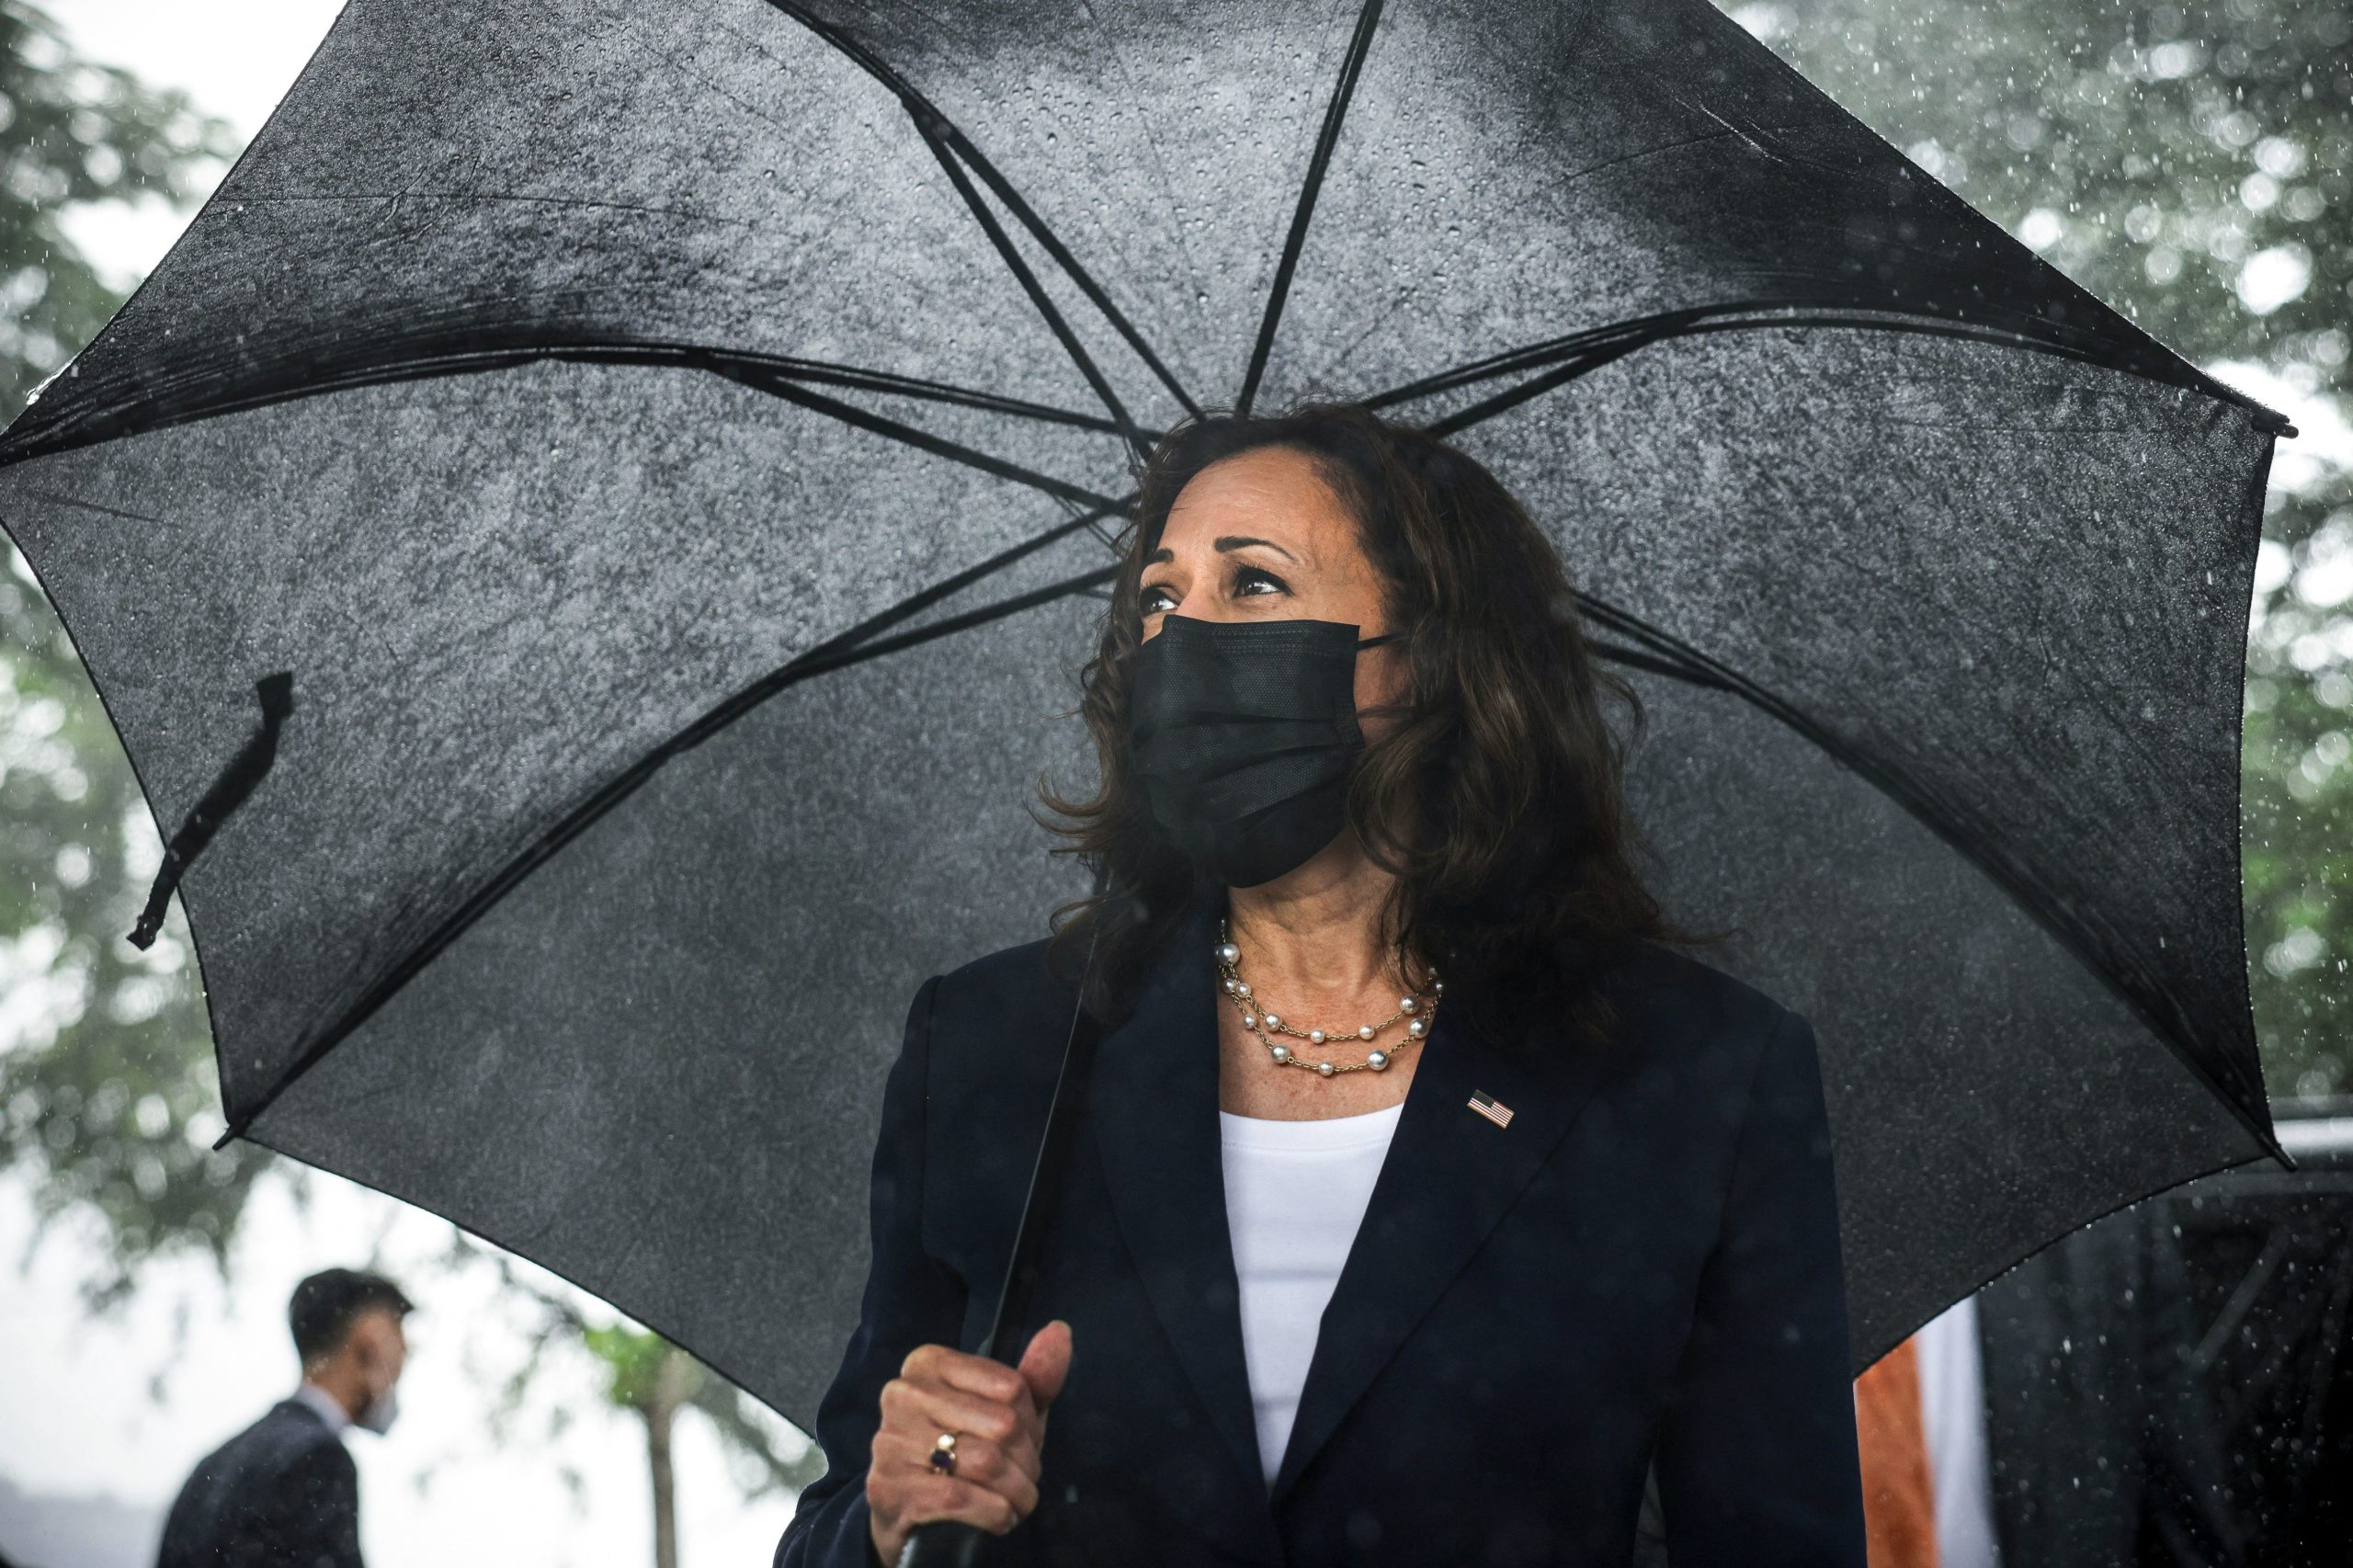 U.S. Vice President Kamala Harris looks on as she lays flowers at the Senator John McCain memorial site, where his Navy aircraft was shot down by the North Vietnamese, on the three-year anniversary of his death, in Hanoi on August 25, 2021. (Photo by EVELYN HOCKSTEIN/POOL/AFP via Getty Images)